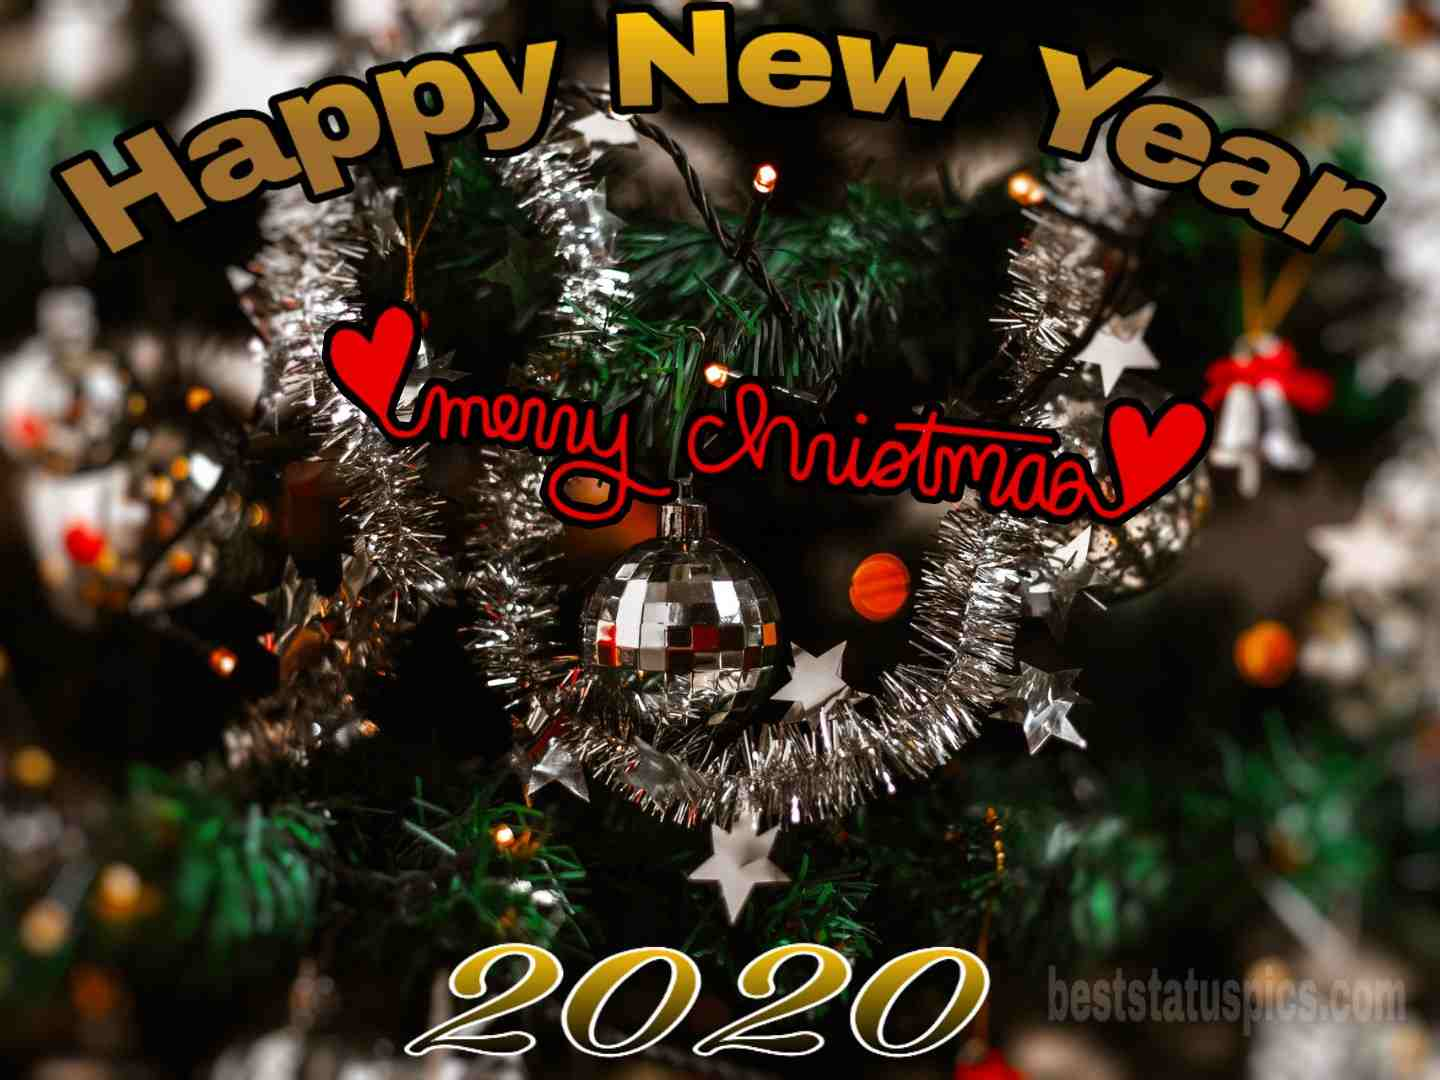 Christmas Profile Pics 2020 Merry Christmas And New Year 2020 | Best Status Pics